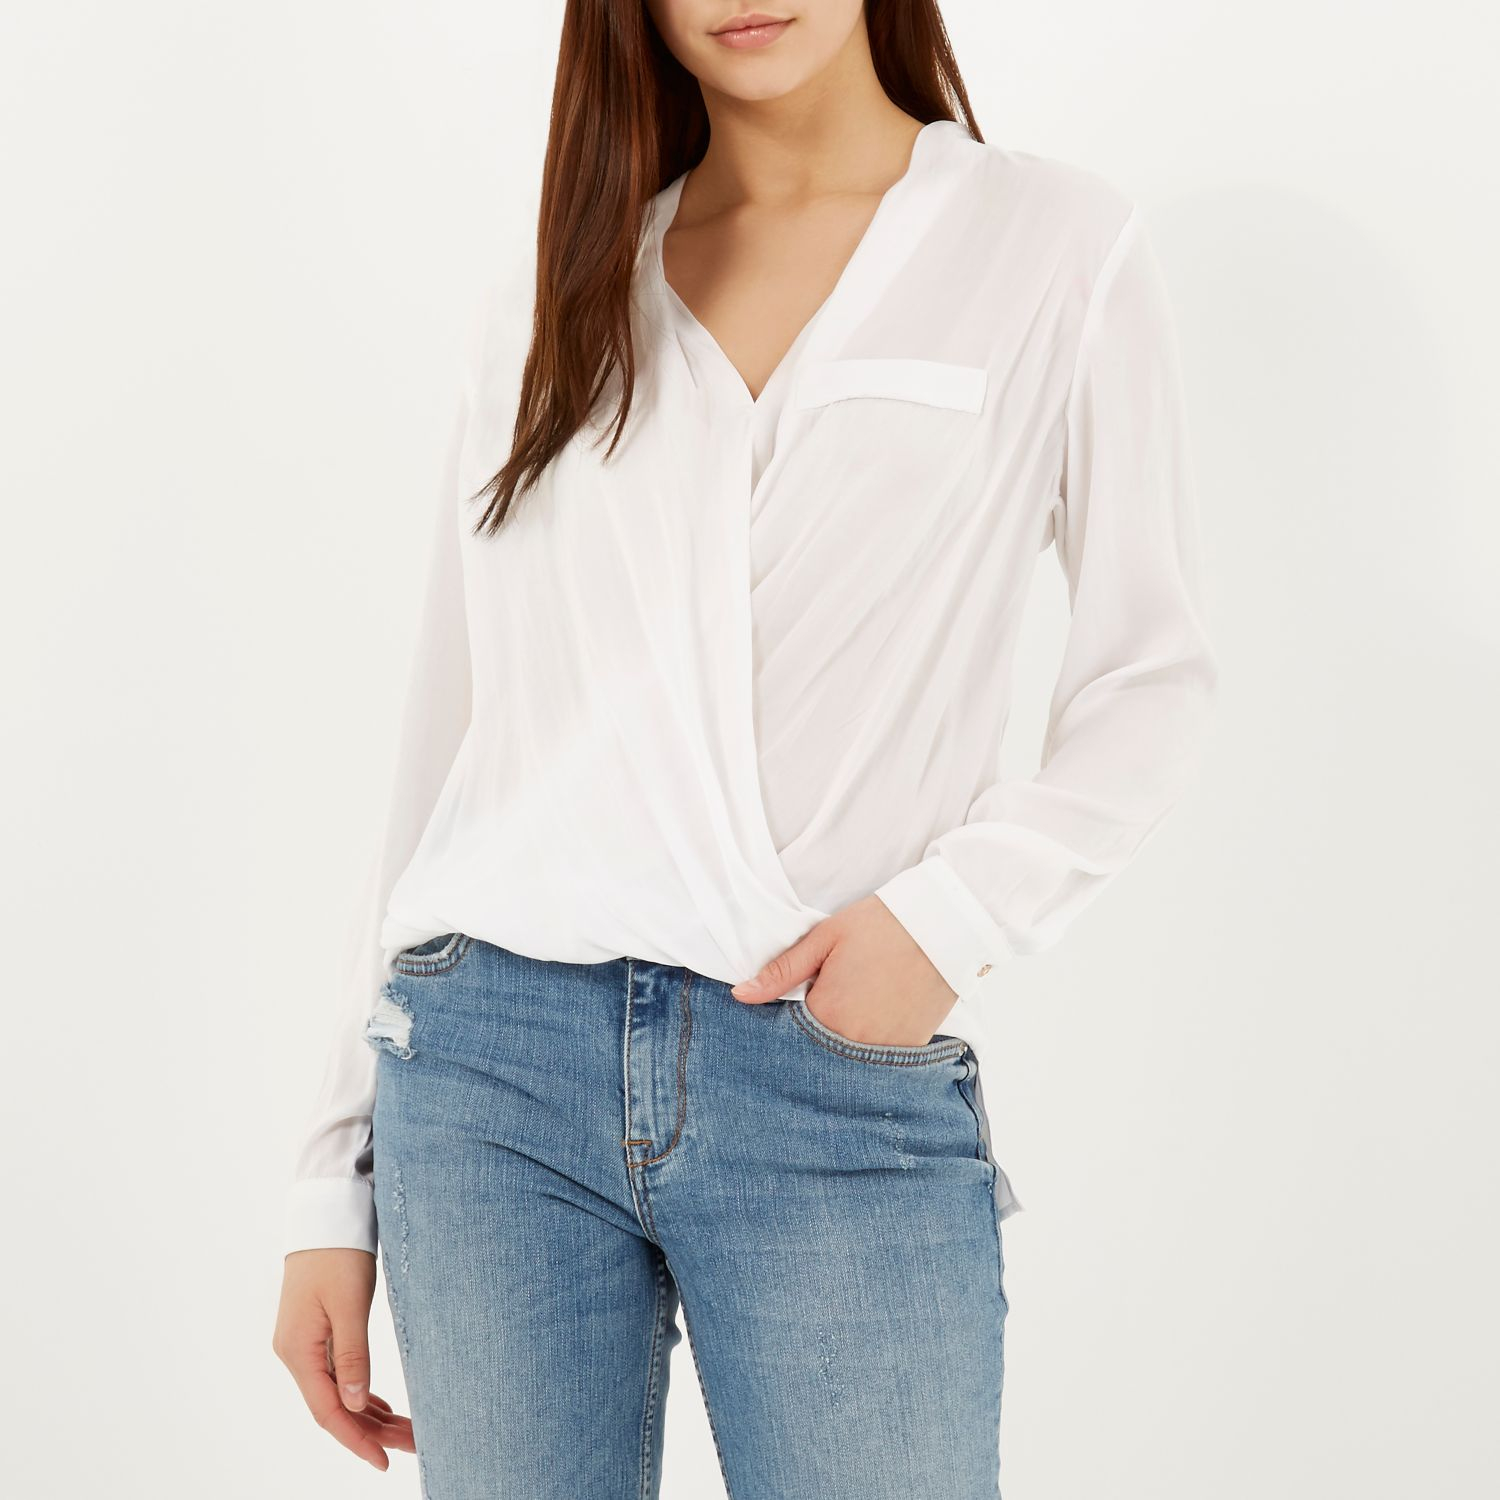 03bdbd92590f08 River Island White Wrap Front Blouse in White - Lyst